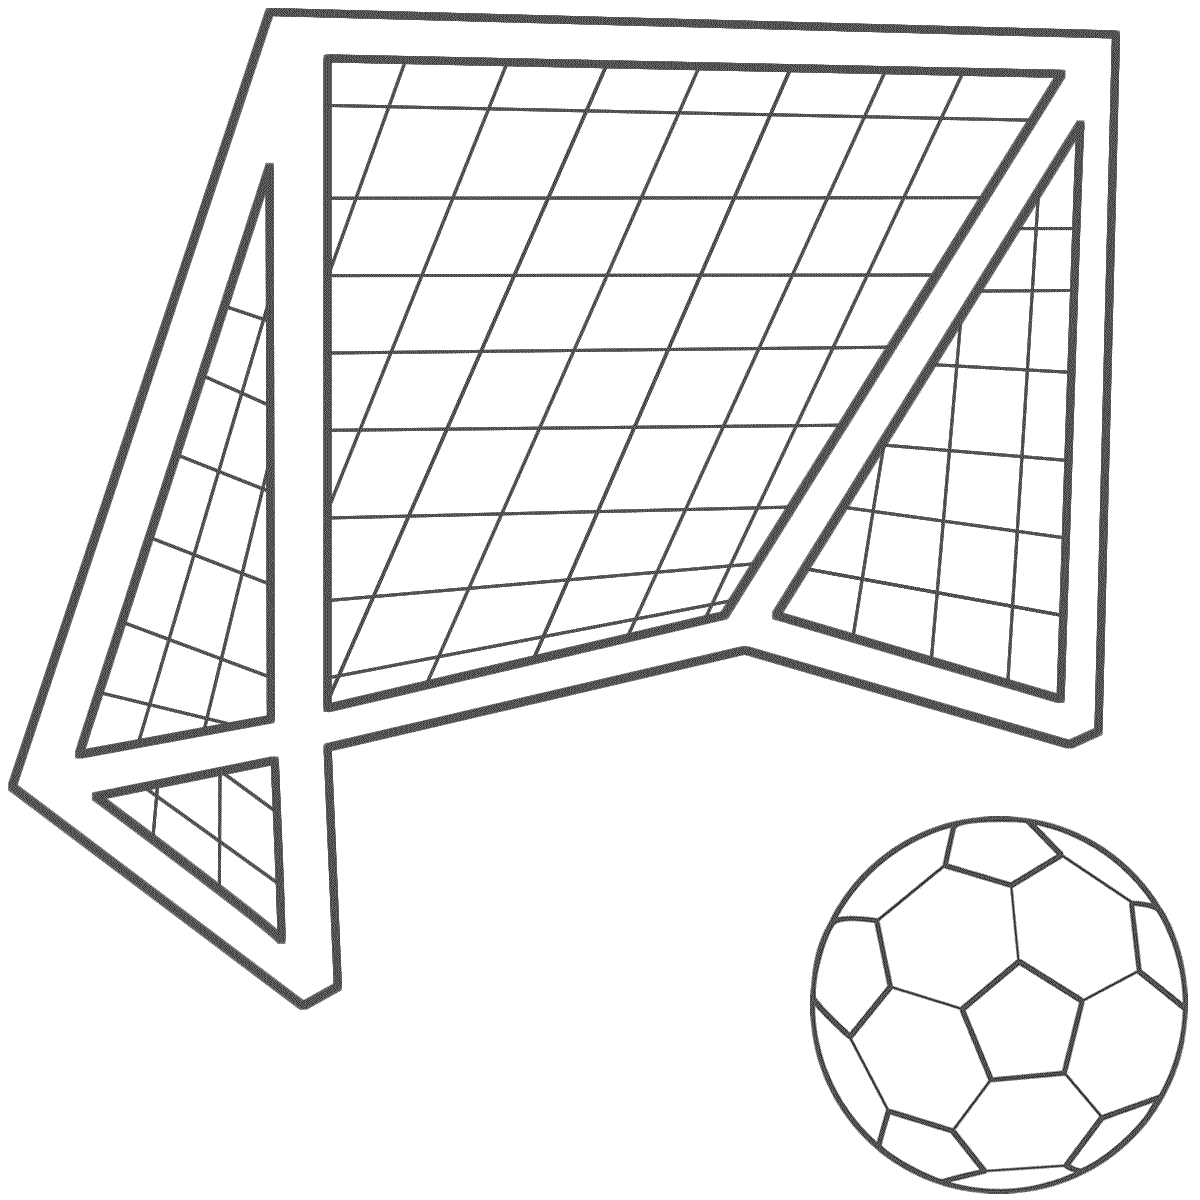 Goal clipart soccer game.  clipartlook